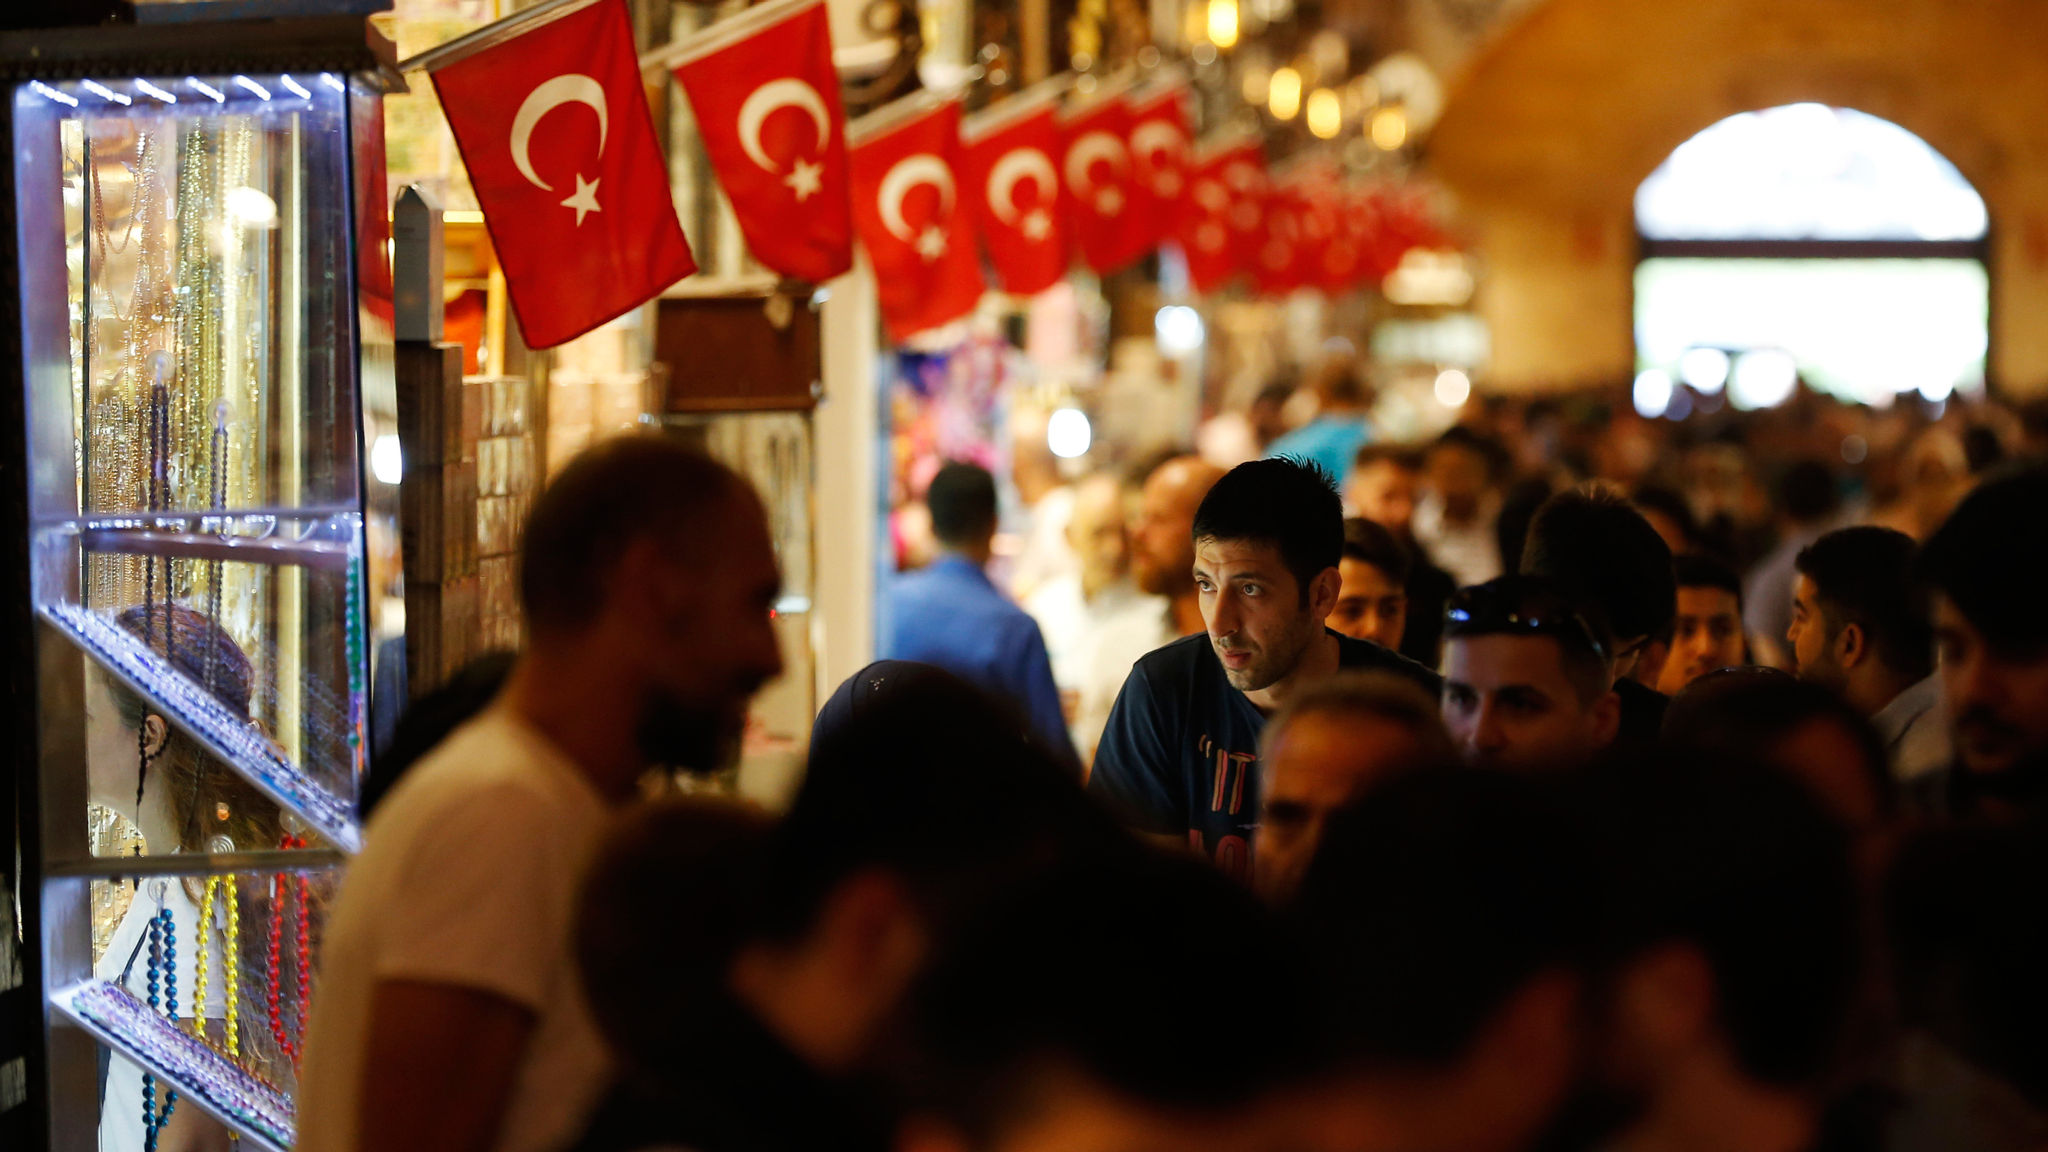 Turkey's 'low' FX reserves leave country vulnerable, Moody's warns